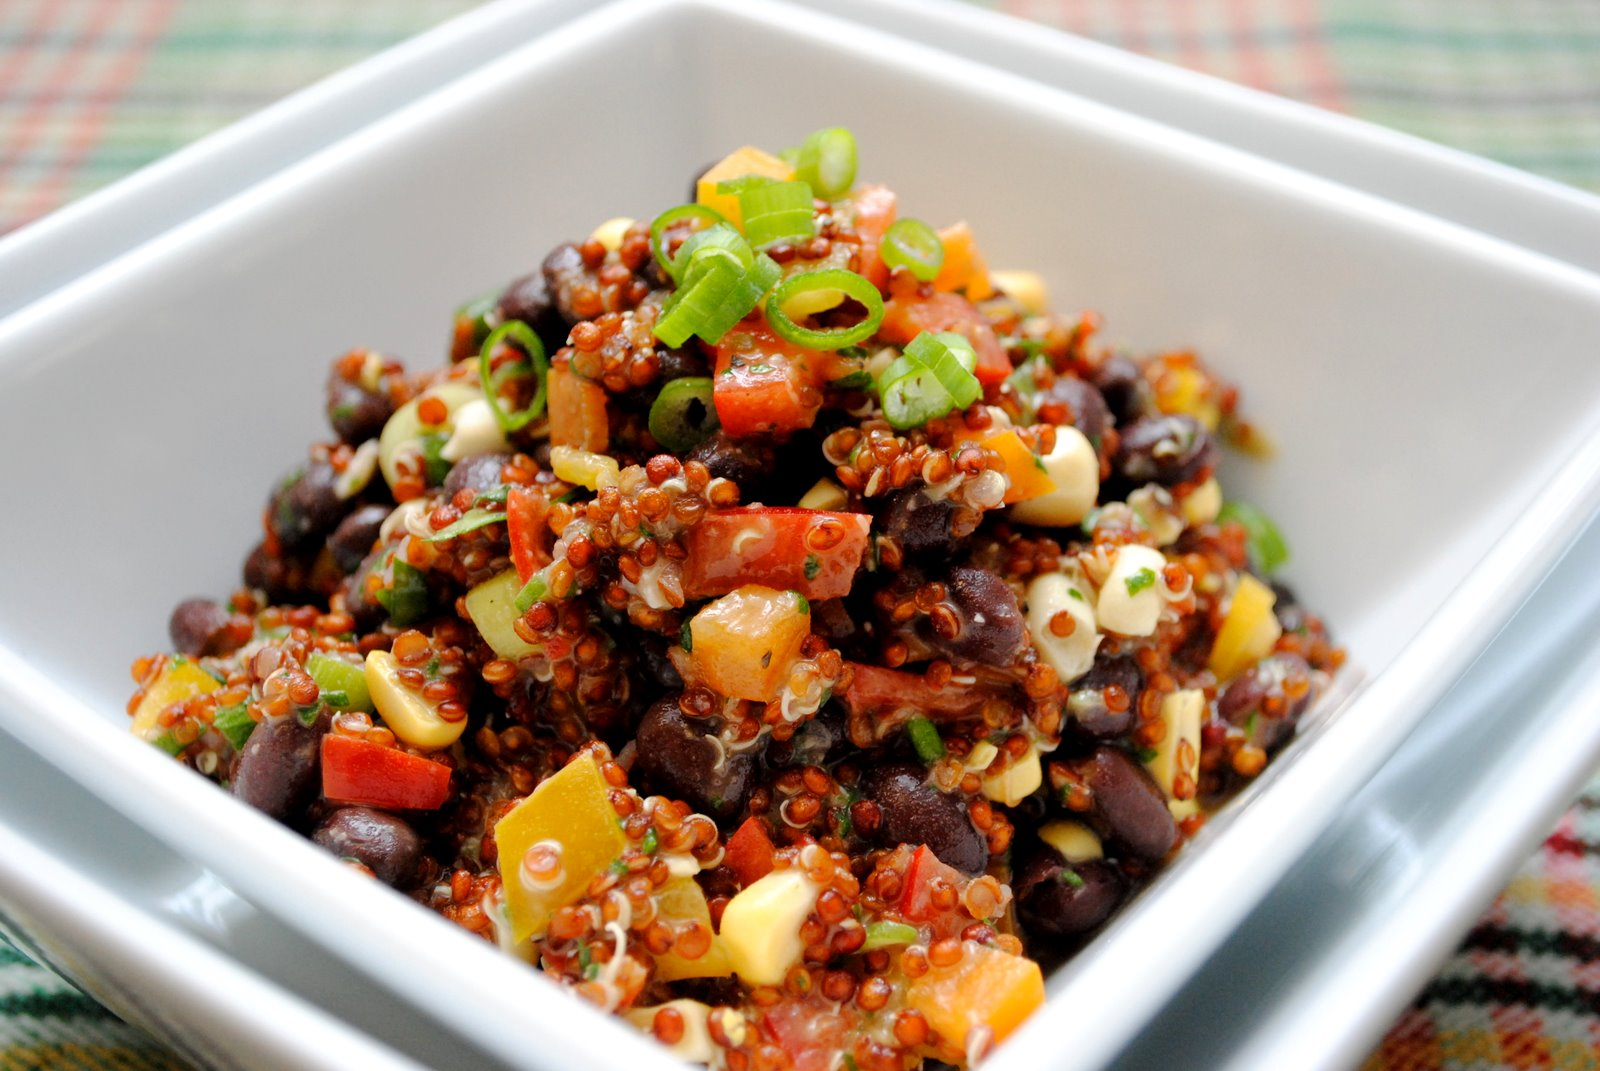 The Church Cook: Red Quinoa and Black Bean Salad